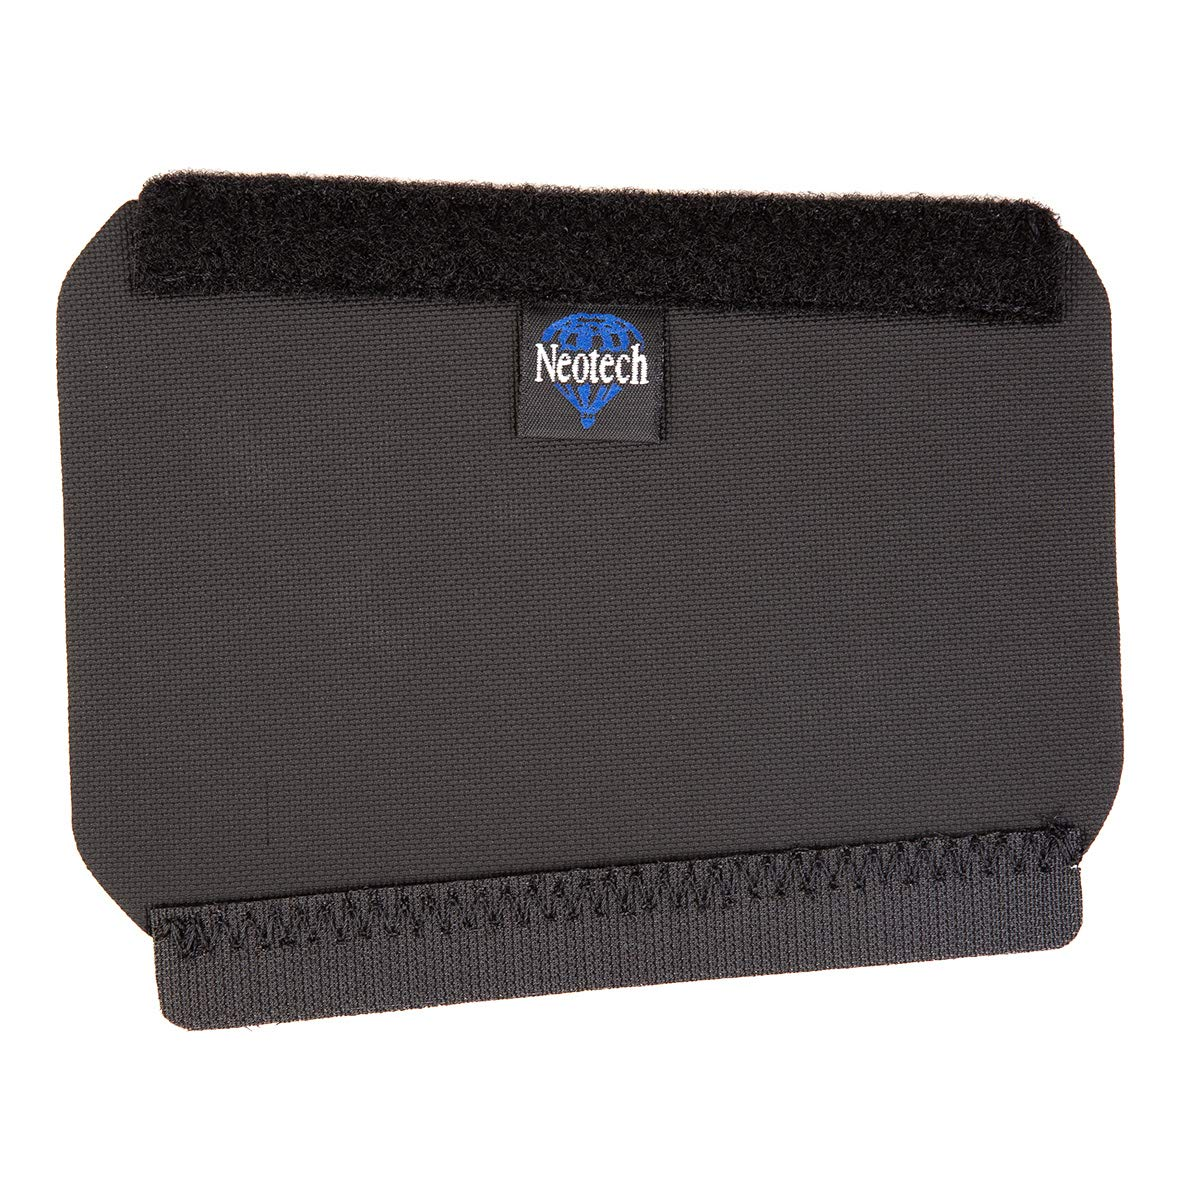 Neotech Brass Wrap, French Horn Large, Black 5101142